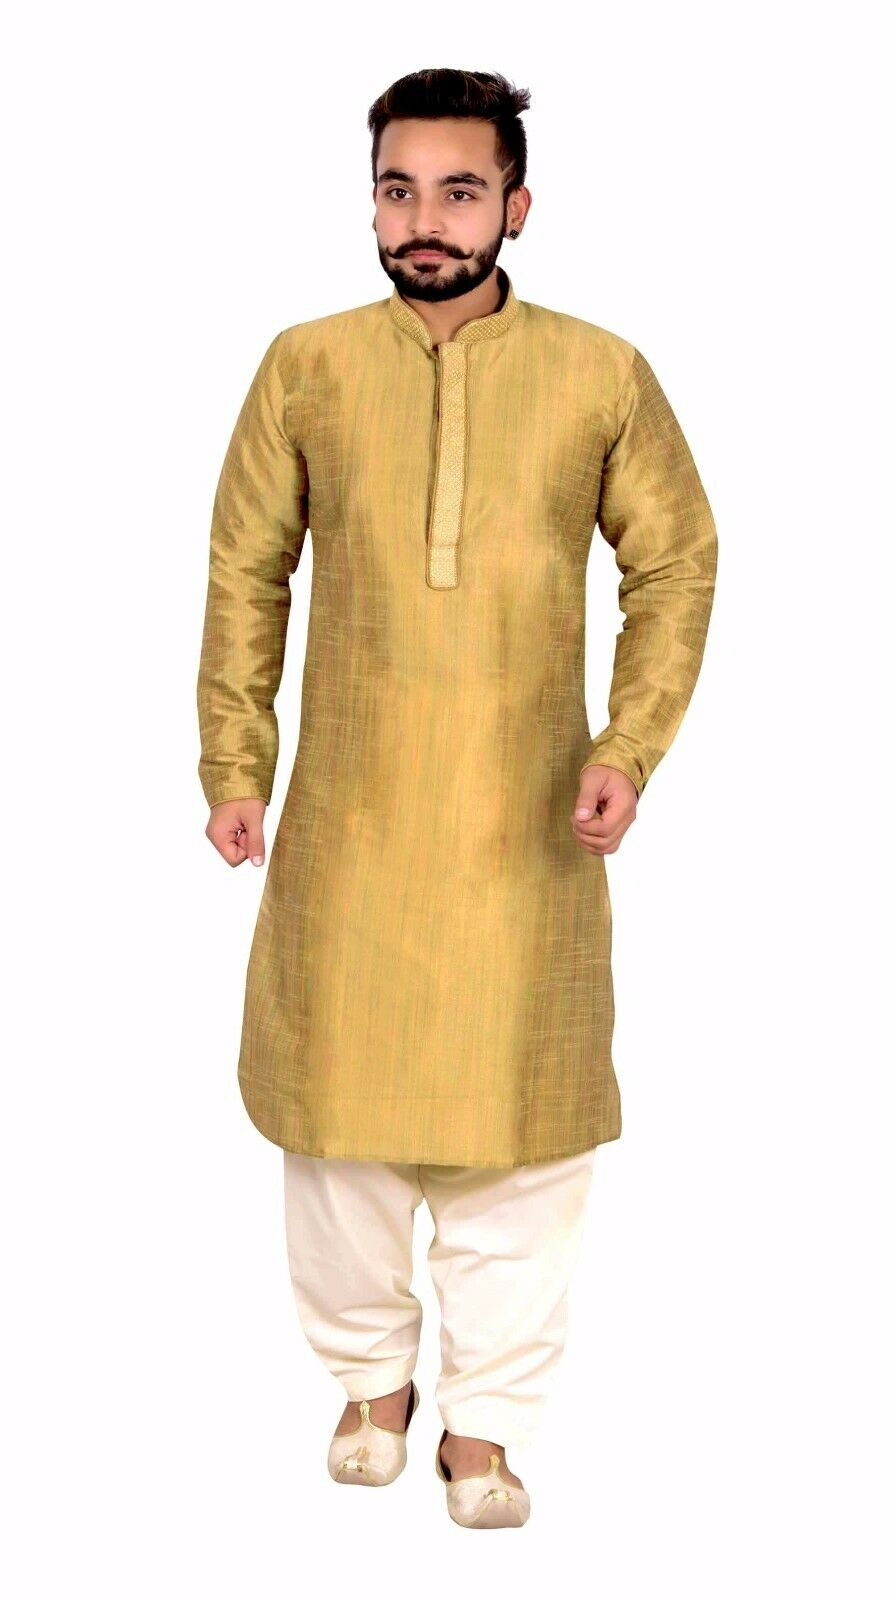 Men's silk gold Kurta Cream Shalwar Kameez pyjama wedding apparel Sherwani 808